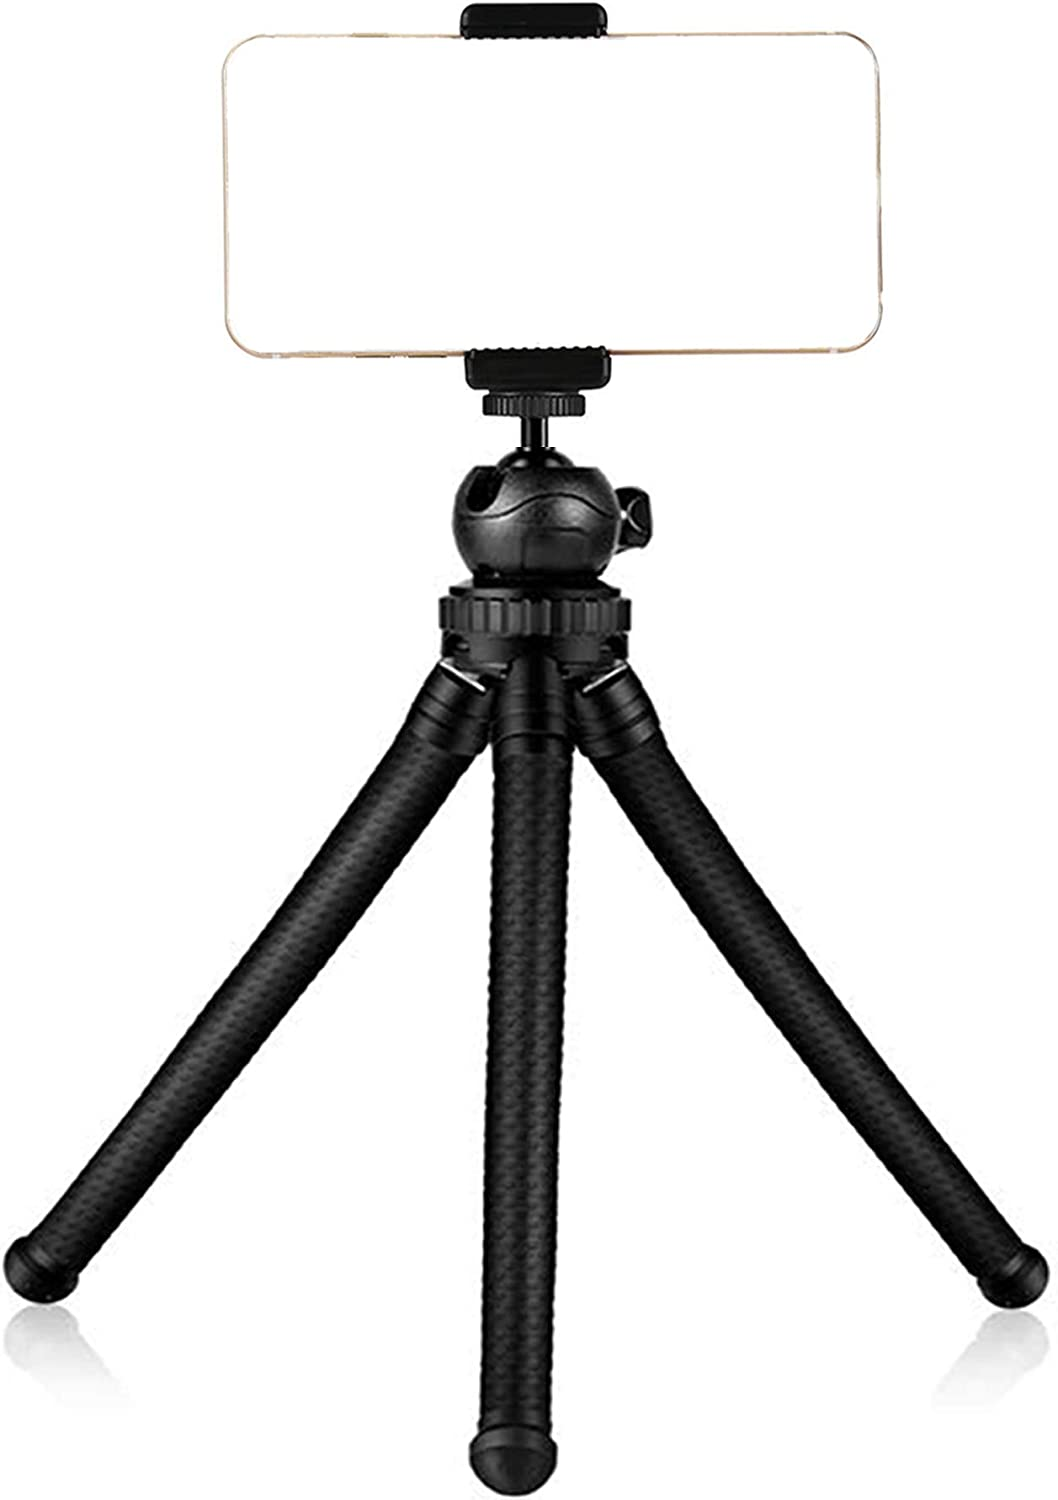 HOMEMO Phone All items free shipping Tripod Mount Stand Holder iP Camera with Compatible Max 70% OFF